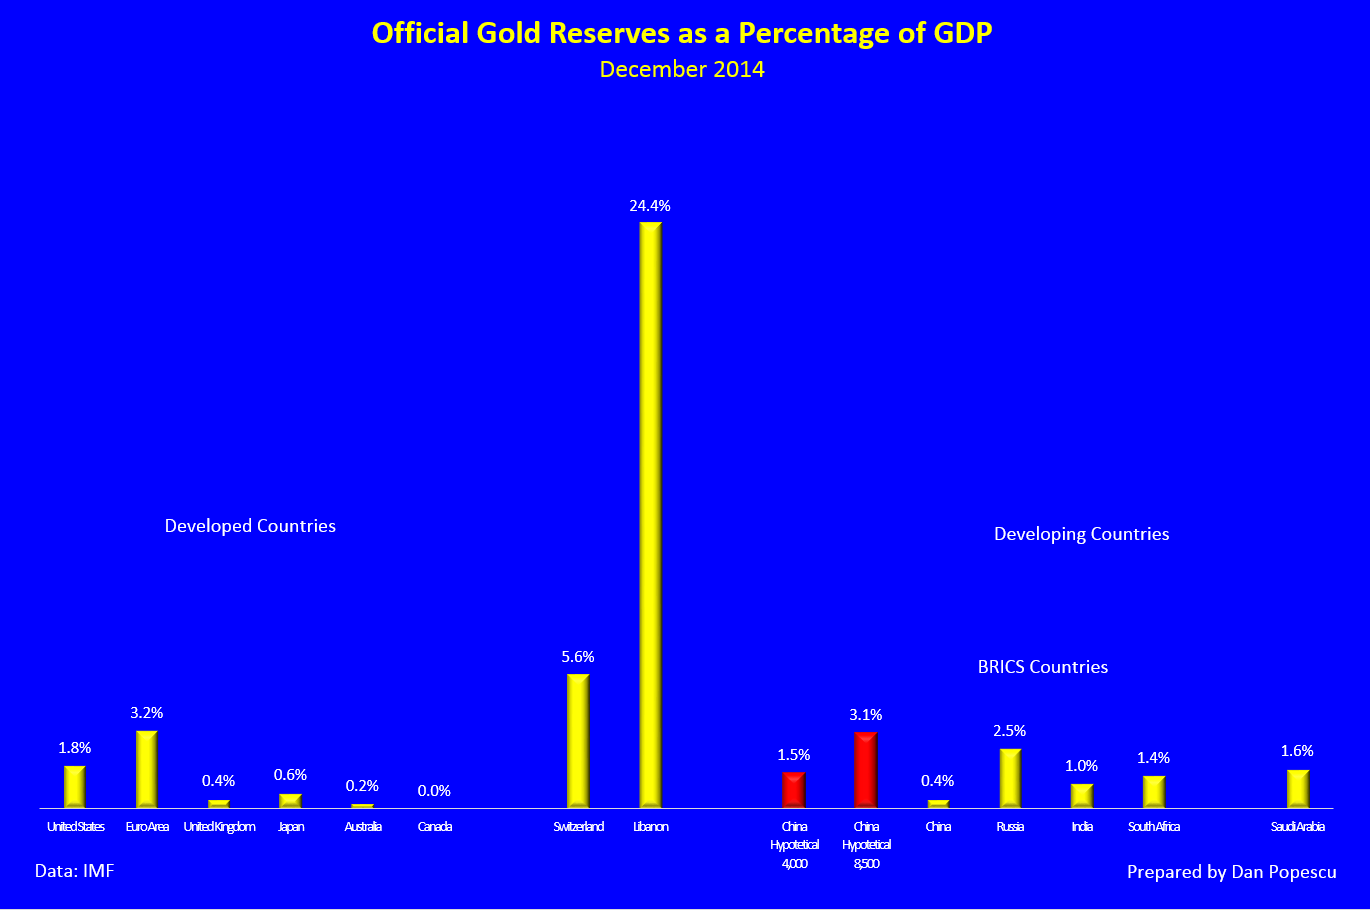 Official Gold Reserves as a Percentage of GDP